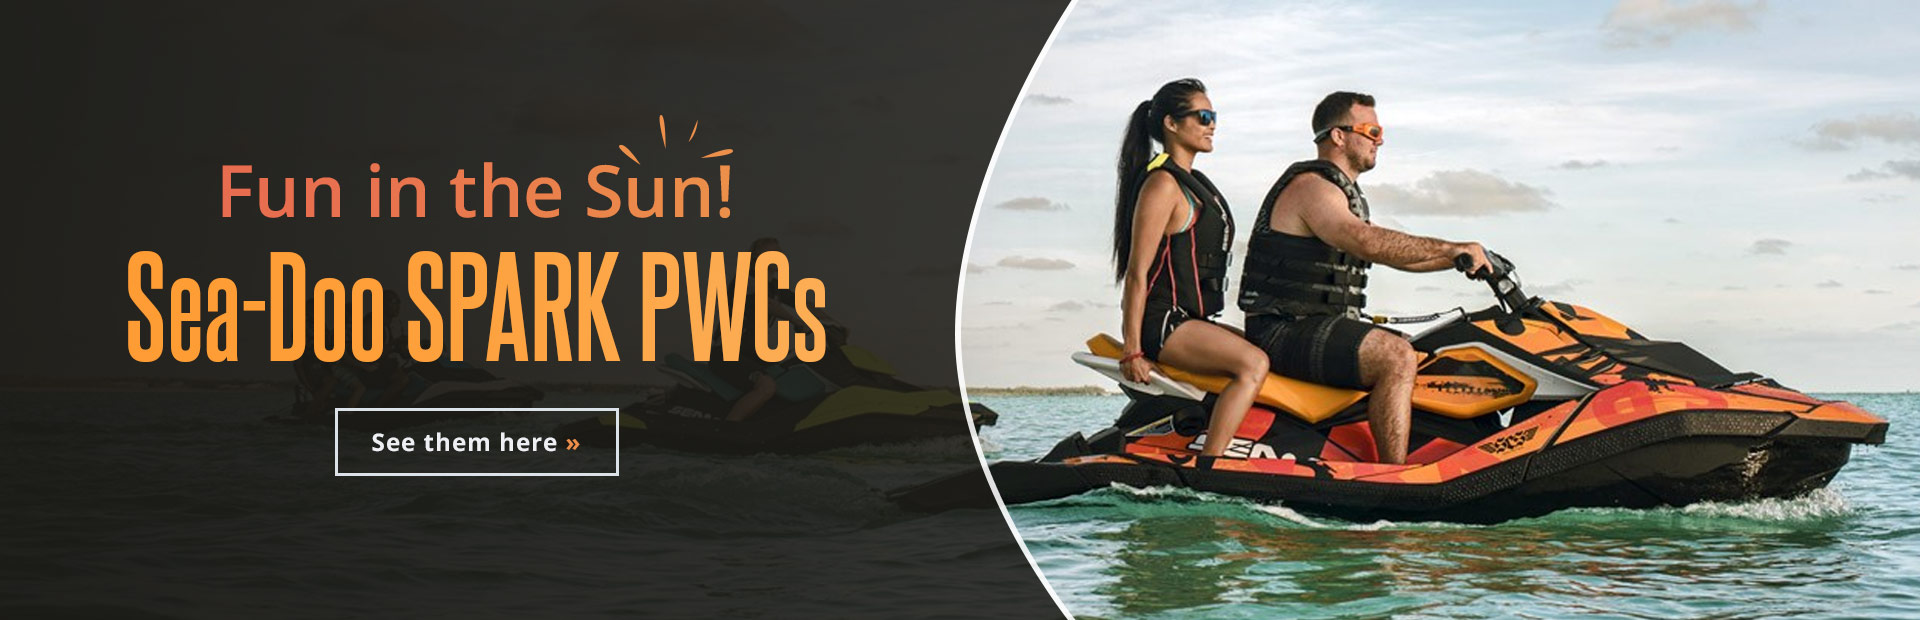 Sea-Doo SPARK PWCs: Click here to view the models.